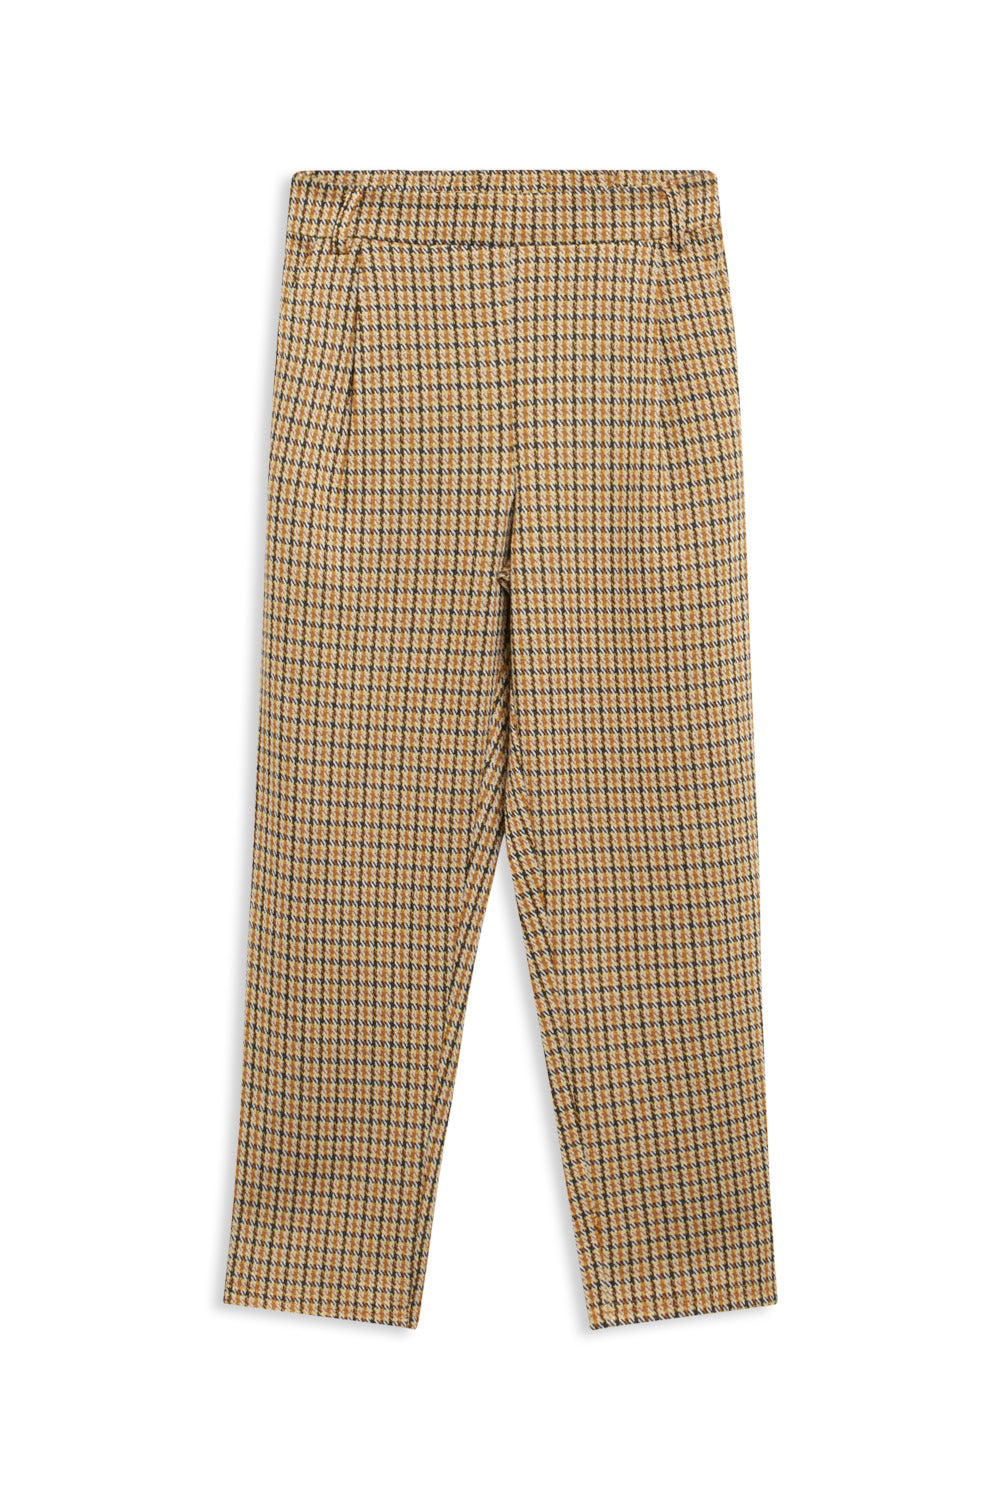 "GRUNT / Ankle pant ""Liv check"""